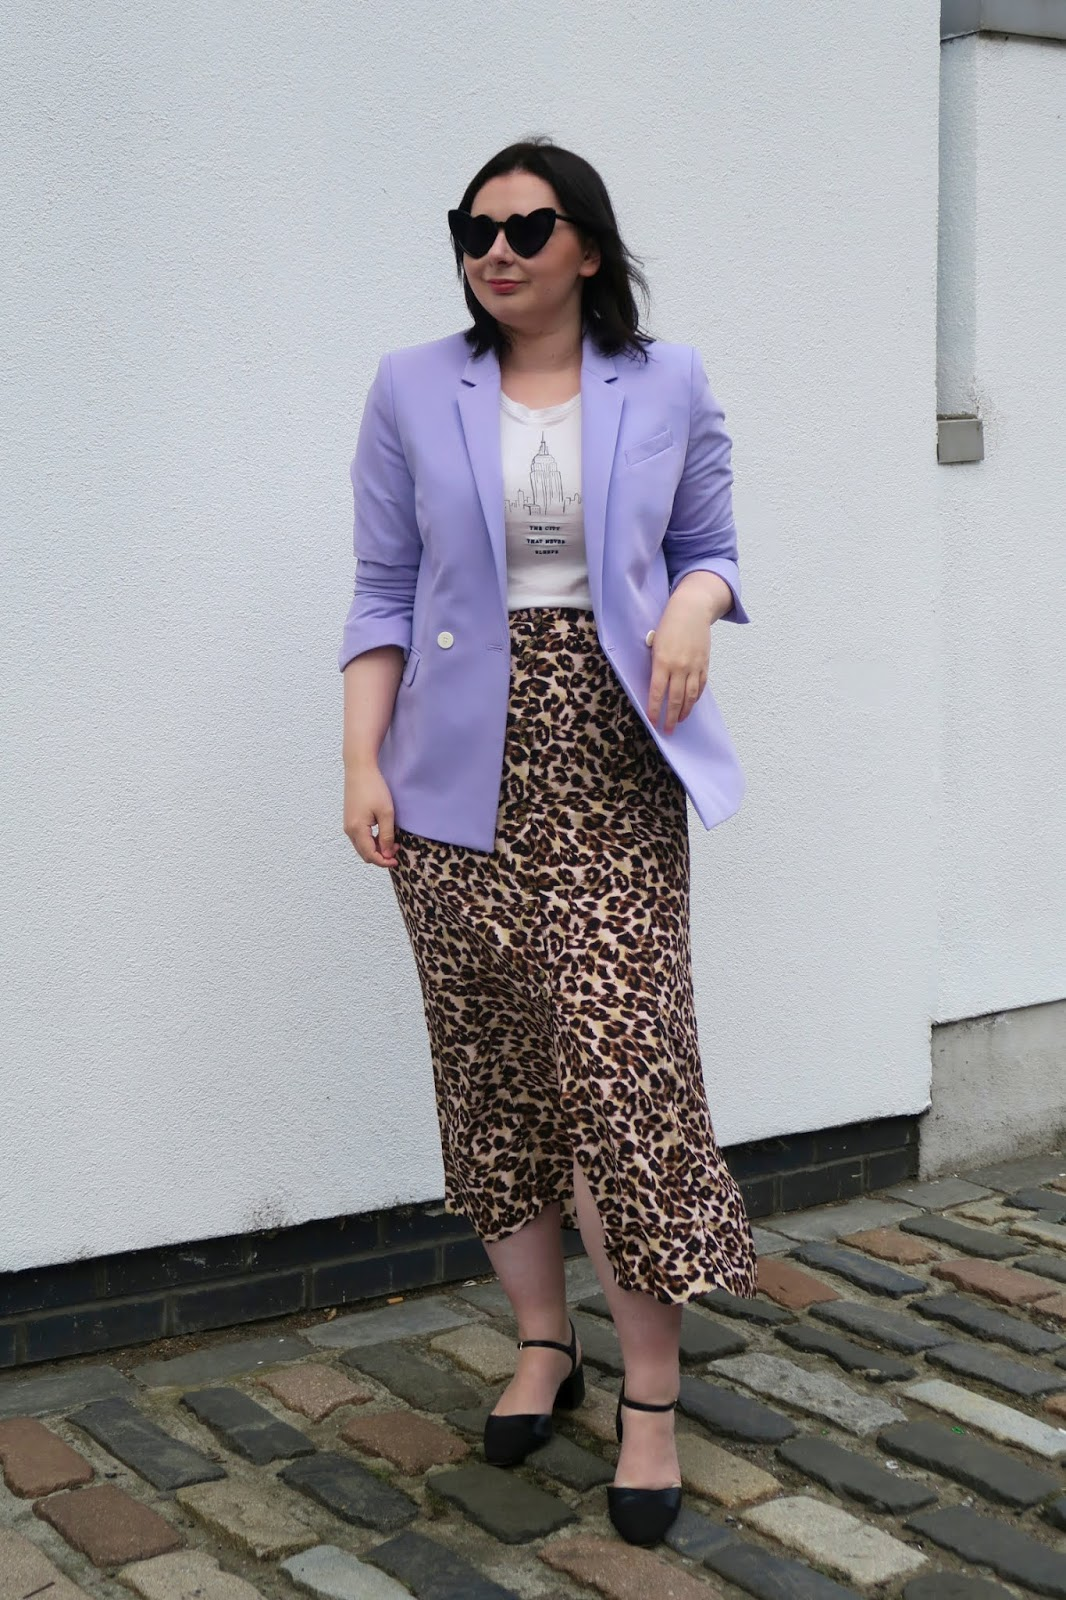 How to wear leopard print- leopard skirt and blazer